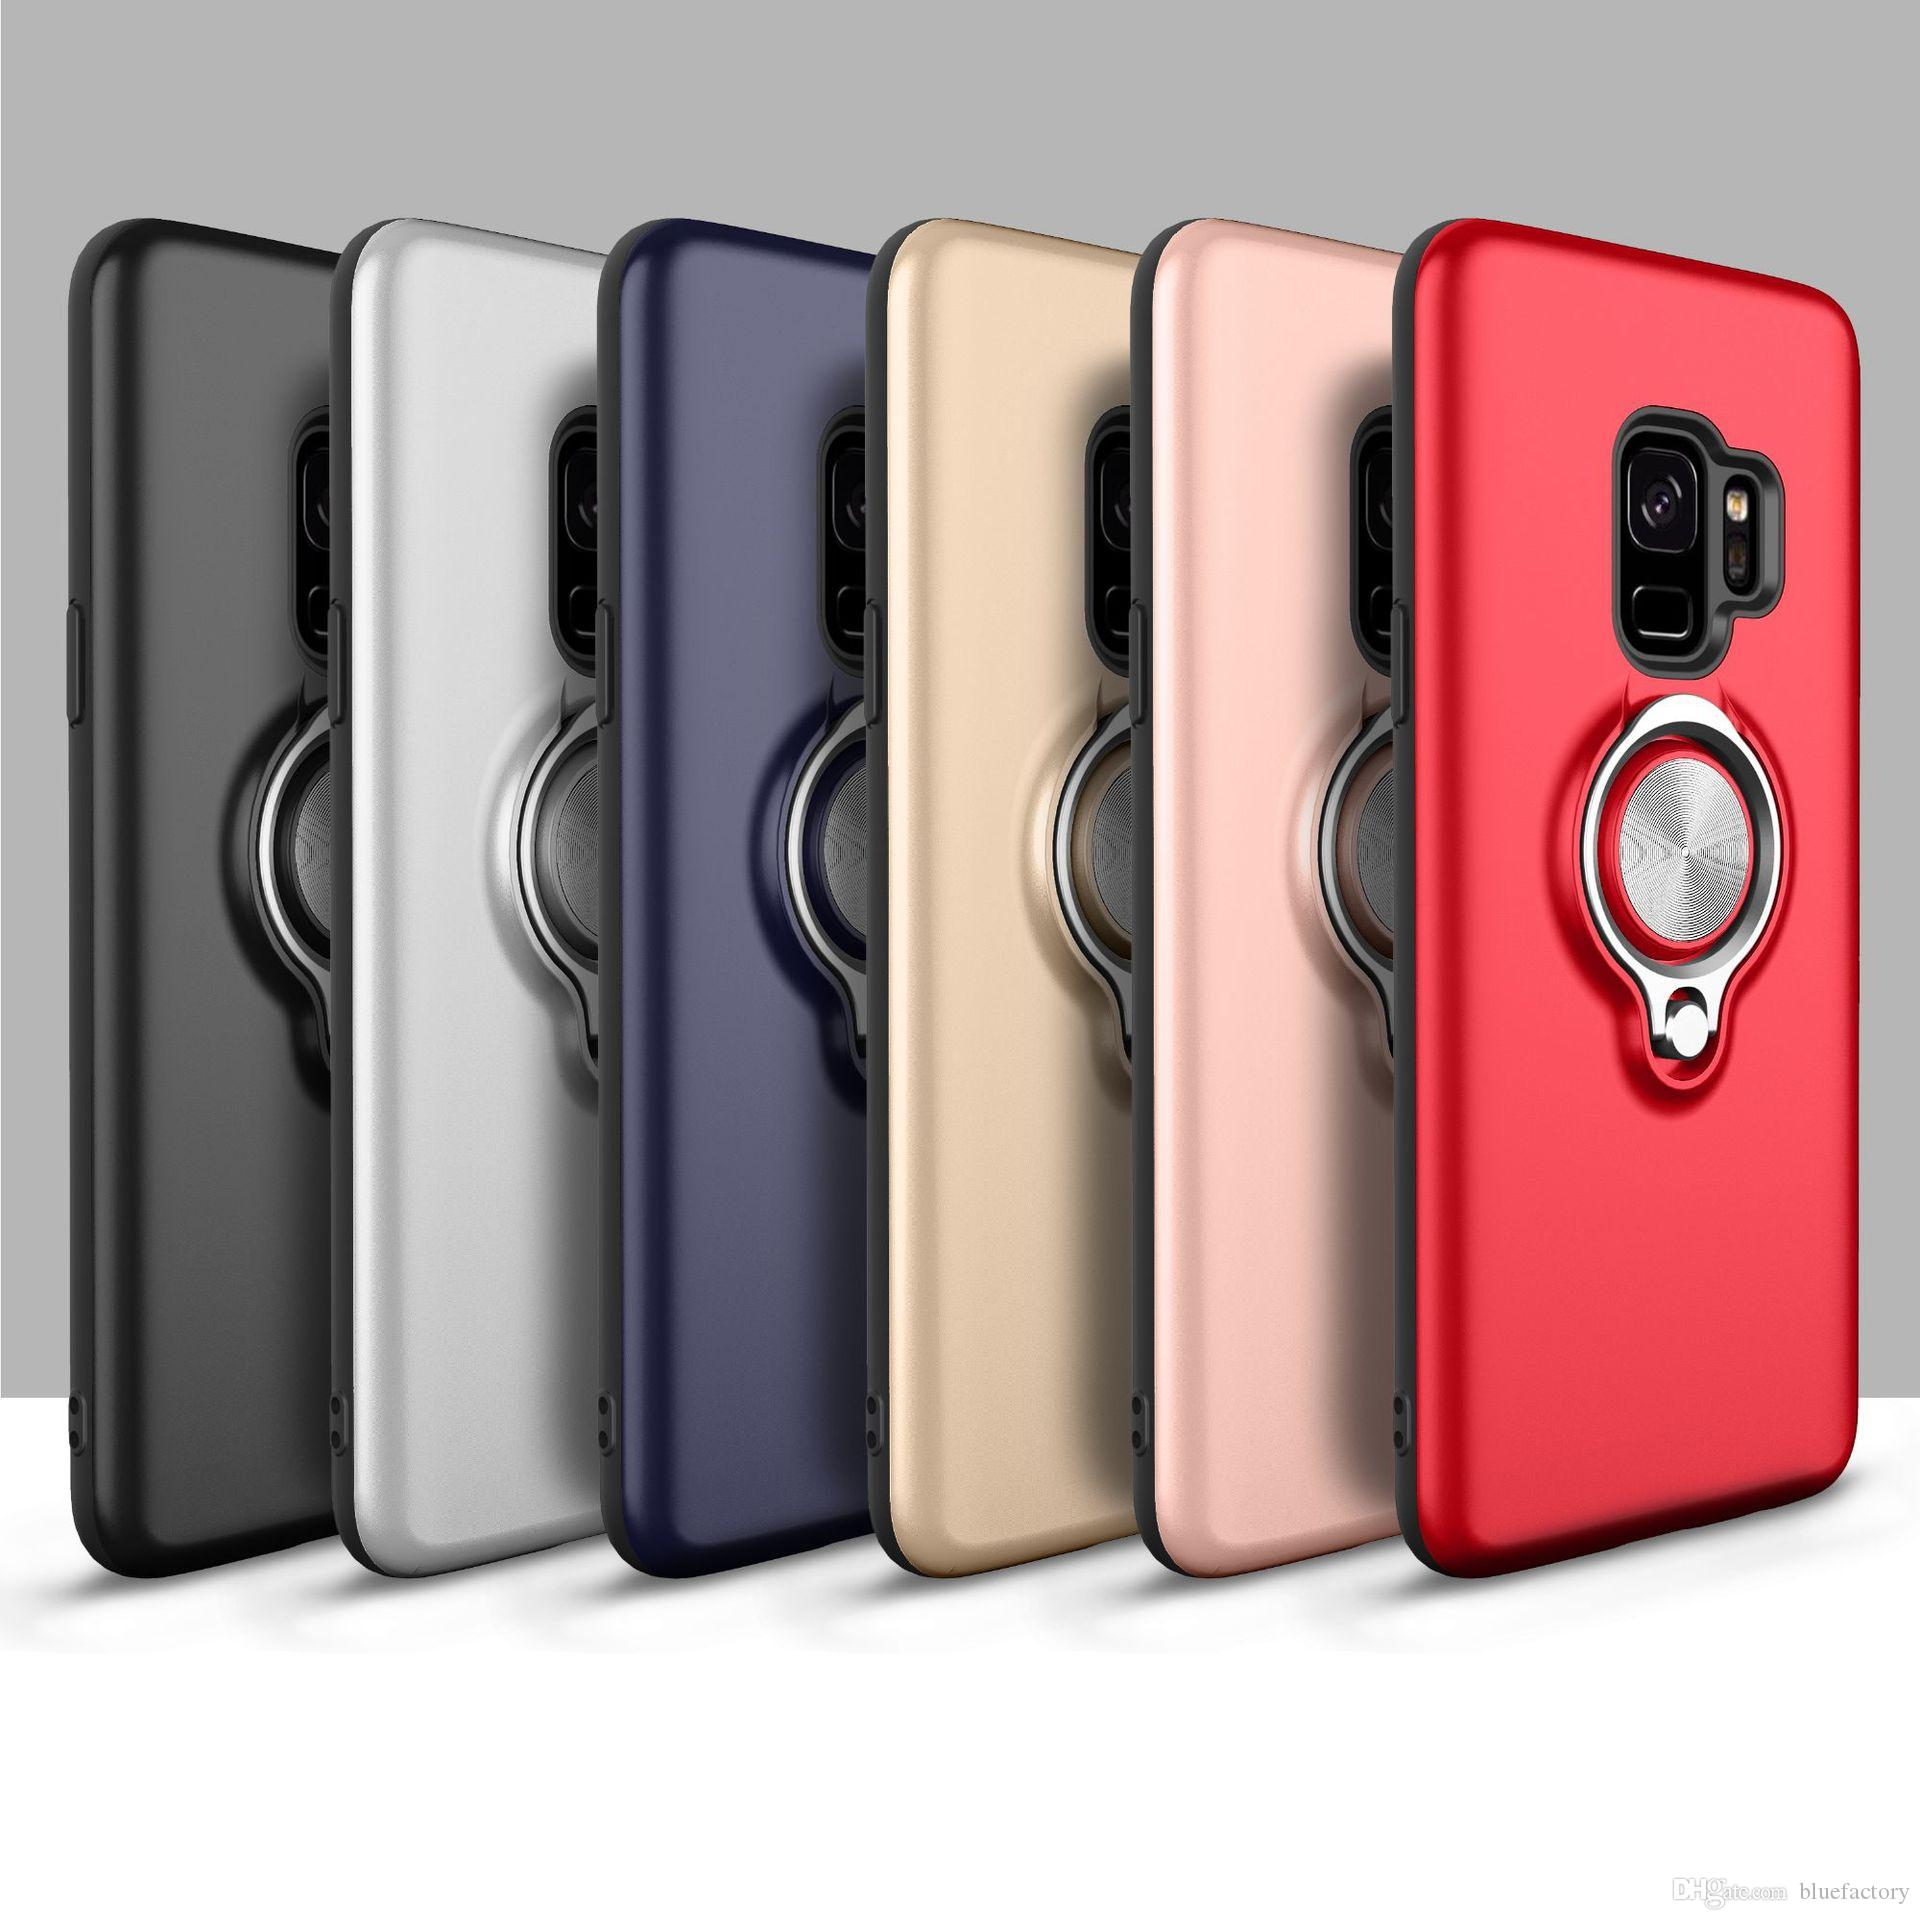 Smartphone Case With Stand Holder Kickstand 360 Degree Ratatation Hard Shockproof For Iphone X Xr XS Max 8 7 Plus Samsung Galaxy S8 S9 Plus Cell Phone Cover